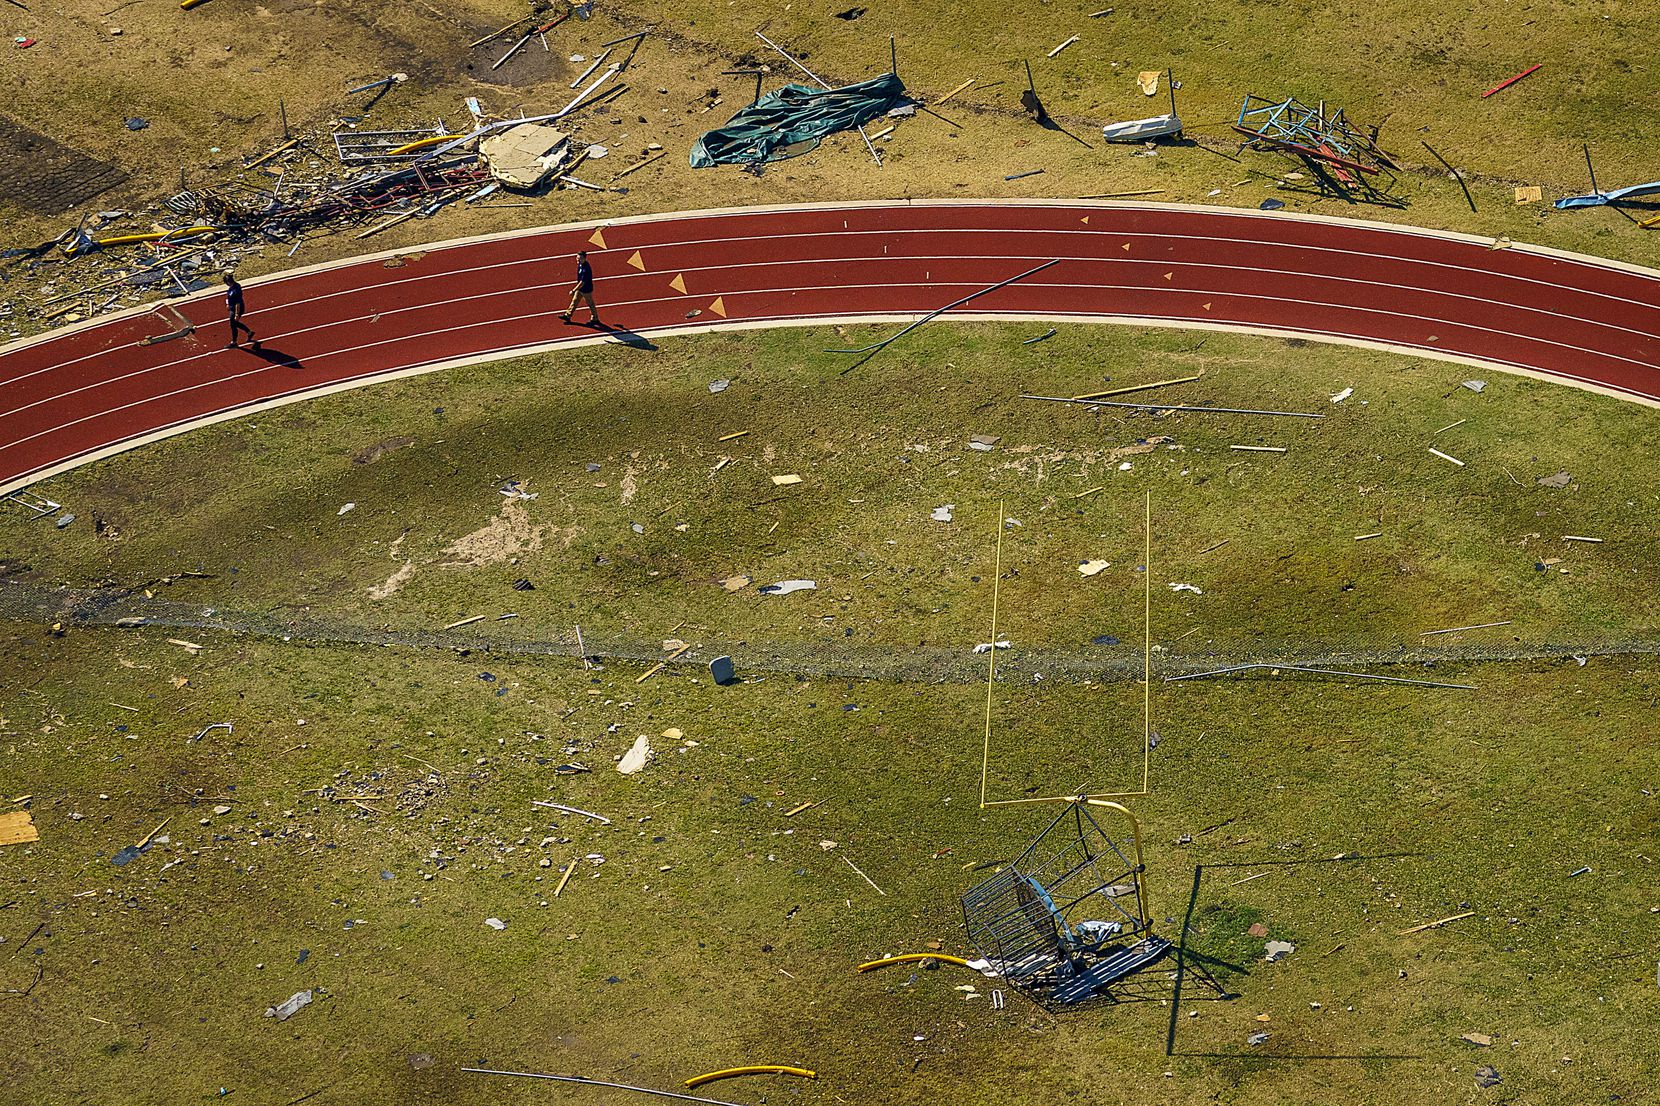 Rubble from tornado damage is strewn across an athletic field at Thomas Jefferson High School on Monday, Oct. 21, 2019, in Dallas.